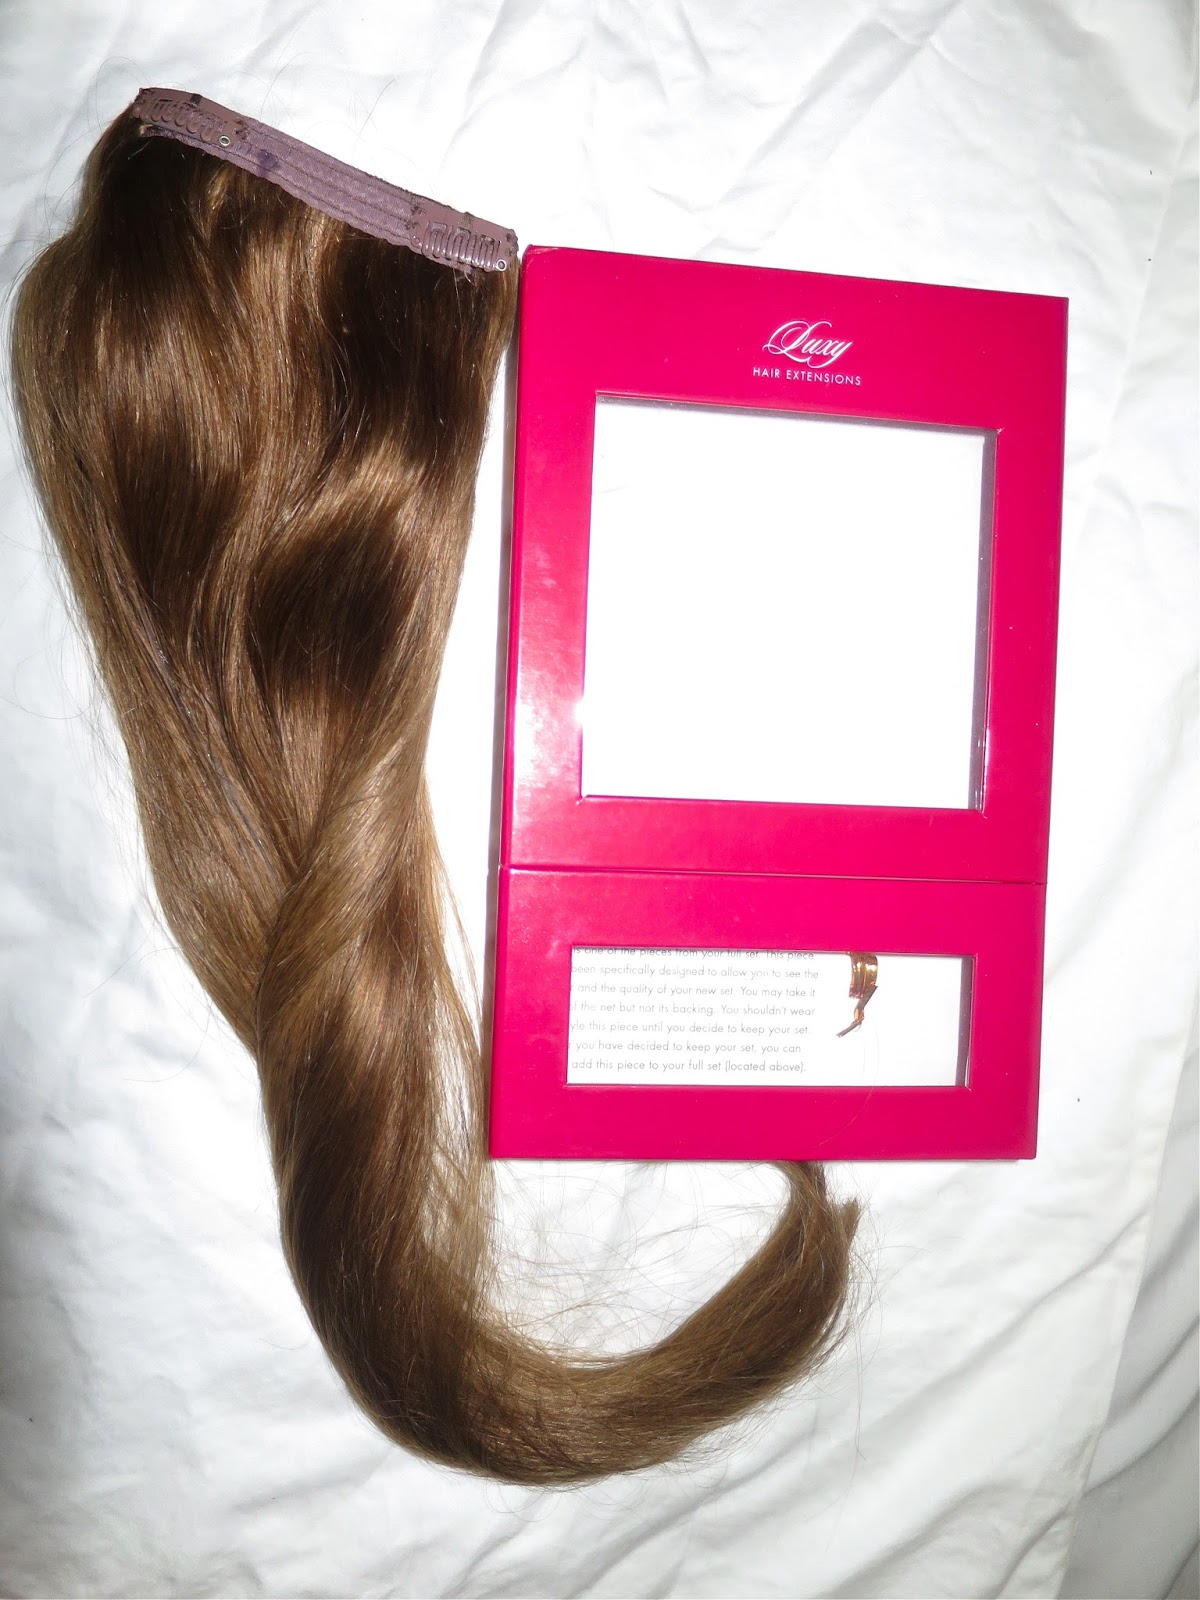 L0vemary How To Make Your Hair Look Fuller Luxy Clip In Hair